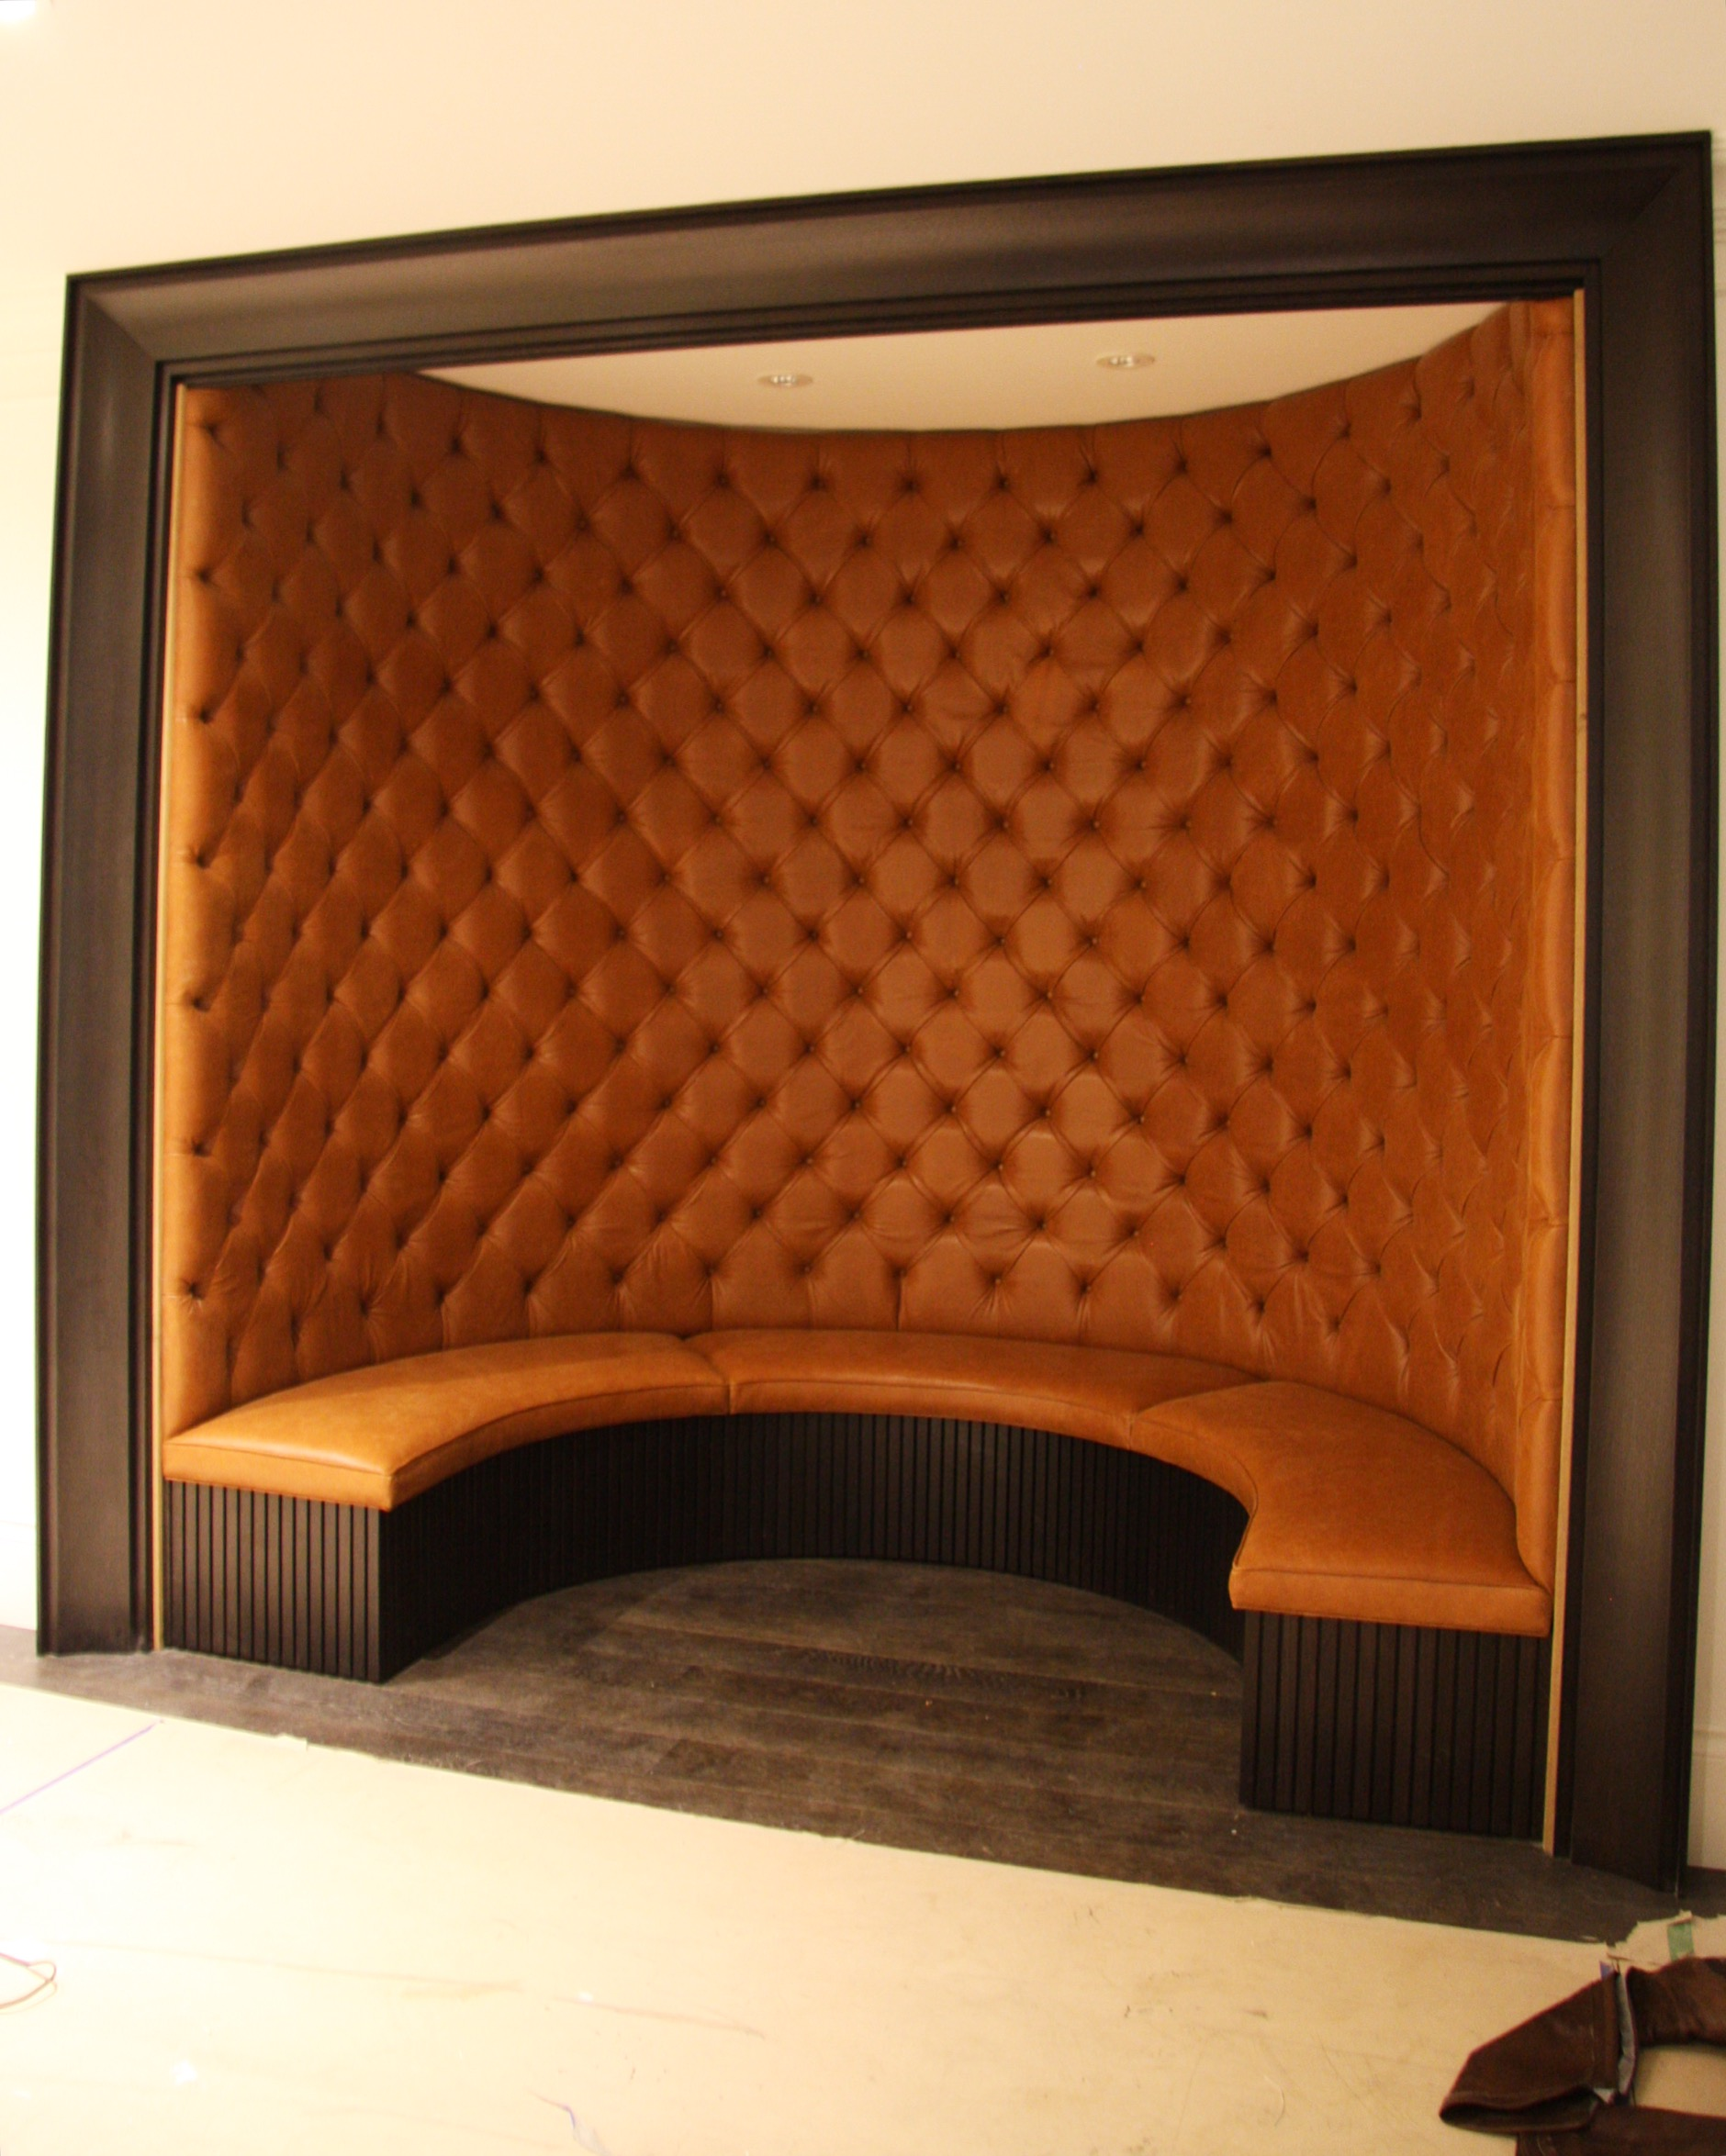 Leather banquette designed by Kelly Deck Design